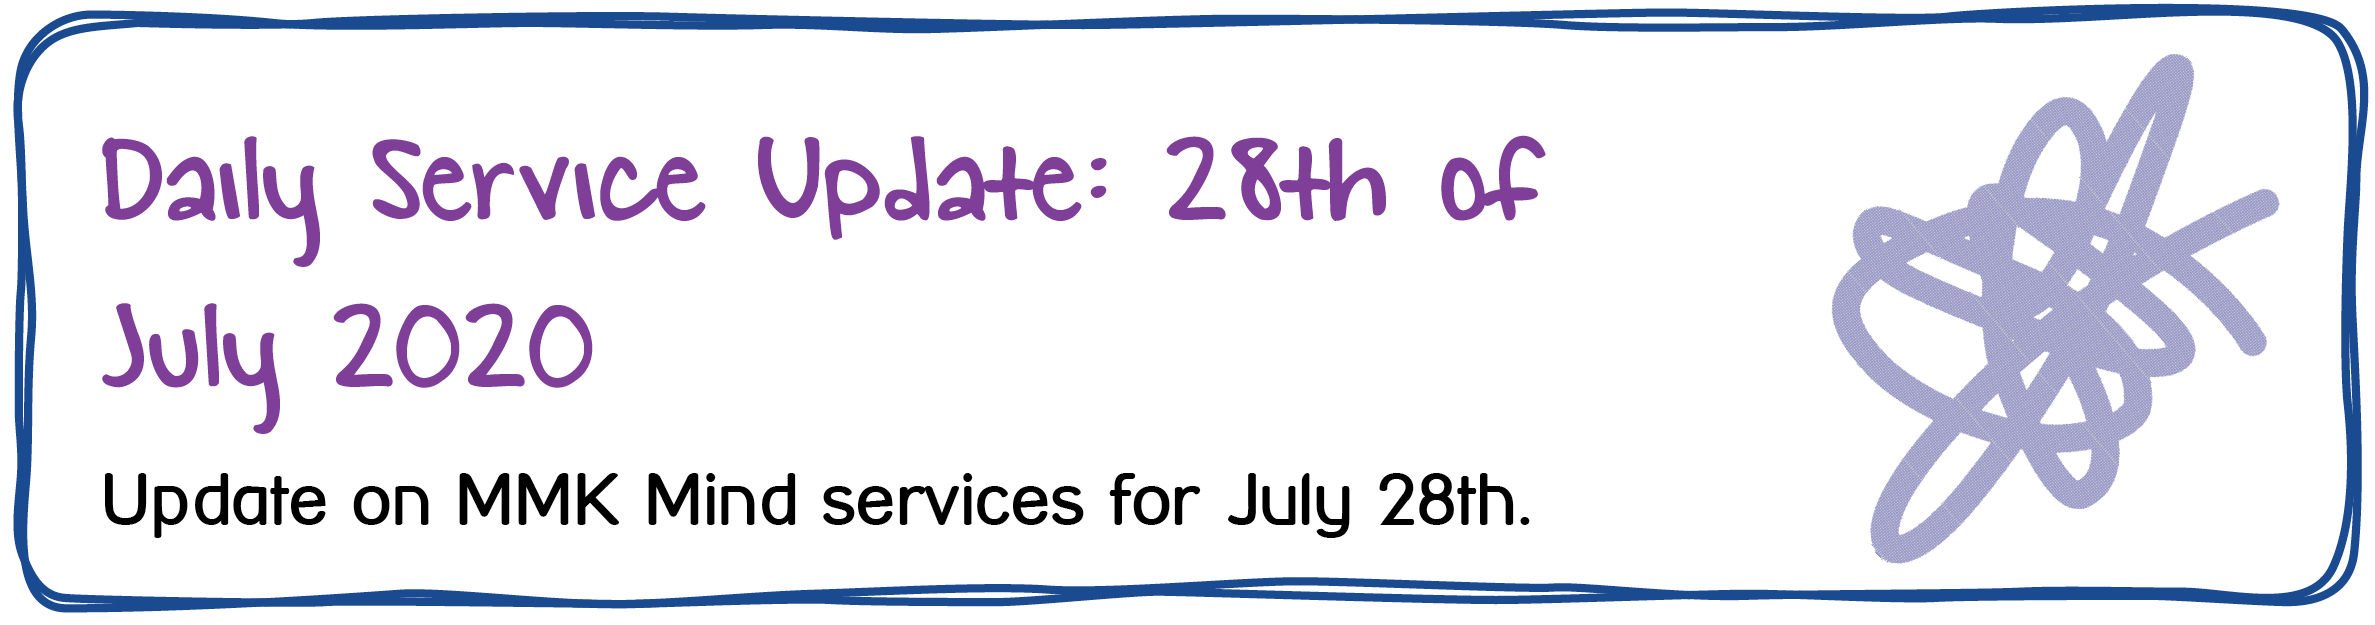 Daily Service Update: 28th of July 2020. Update on MMK Mind services for July 28th.